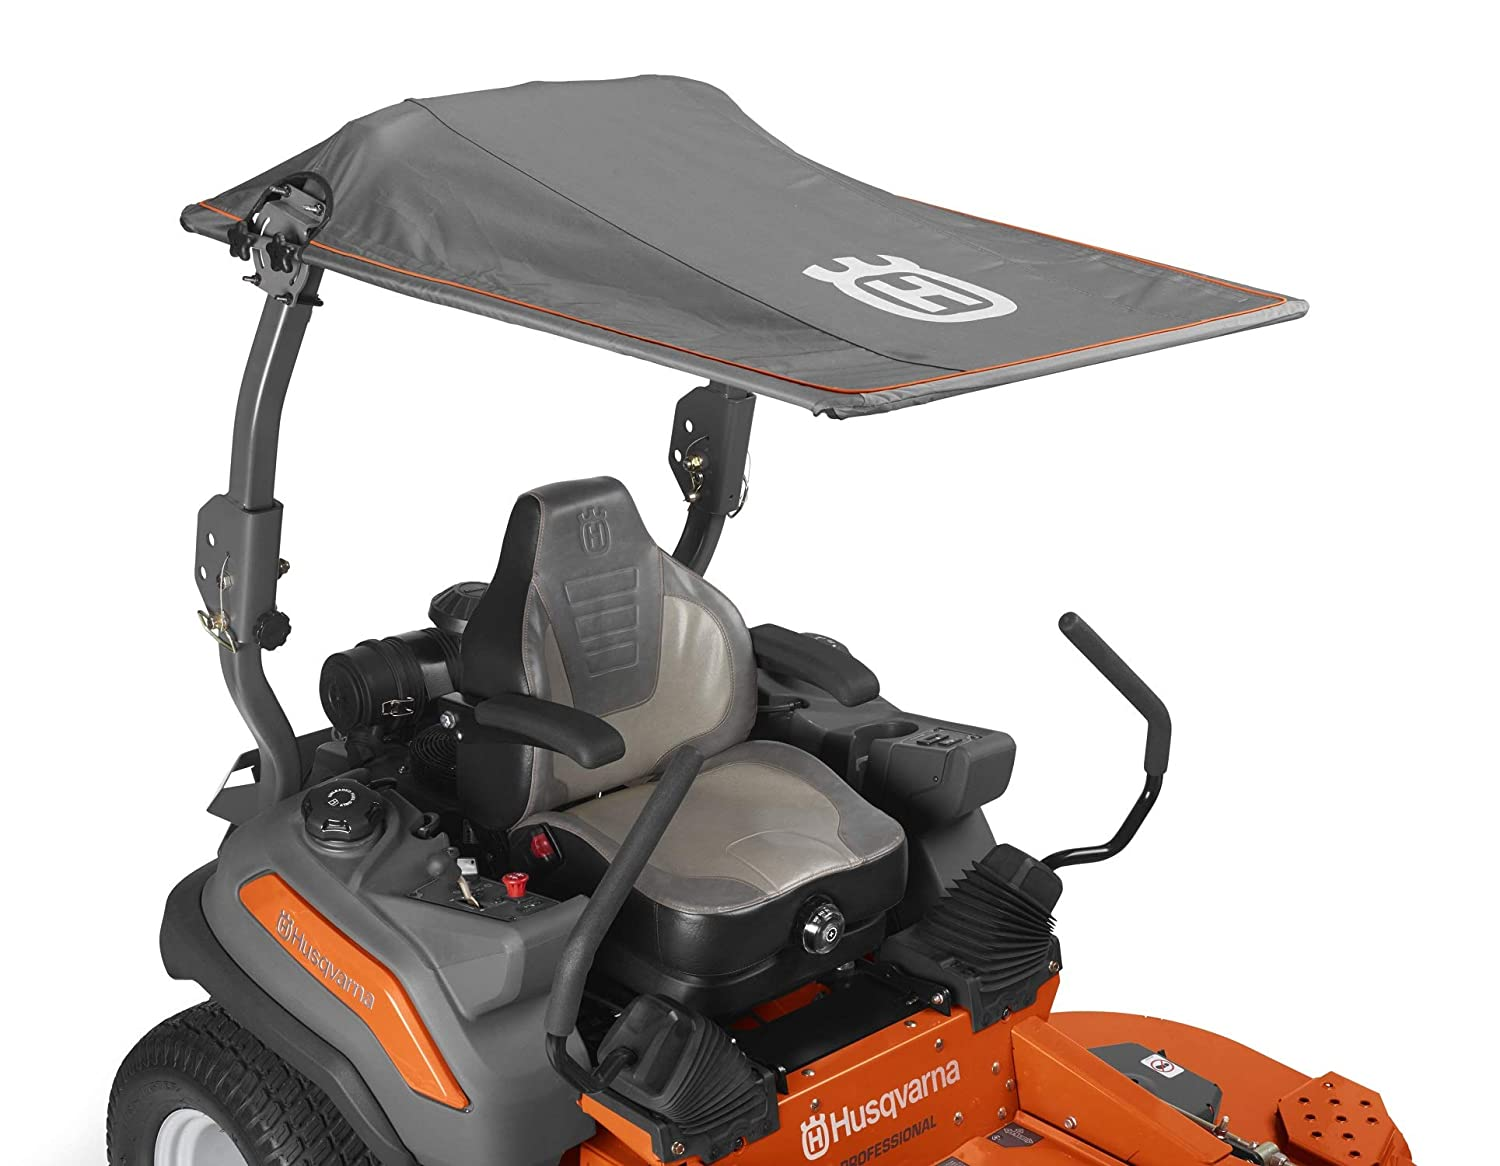 Husqvarna Zero Turn Sun Canopy Riding Mower Accessories, Orange Gray